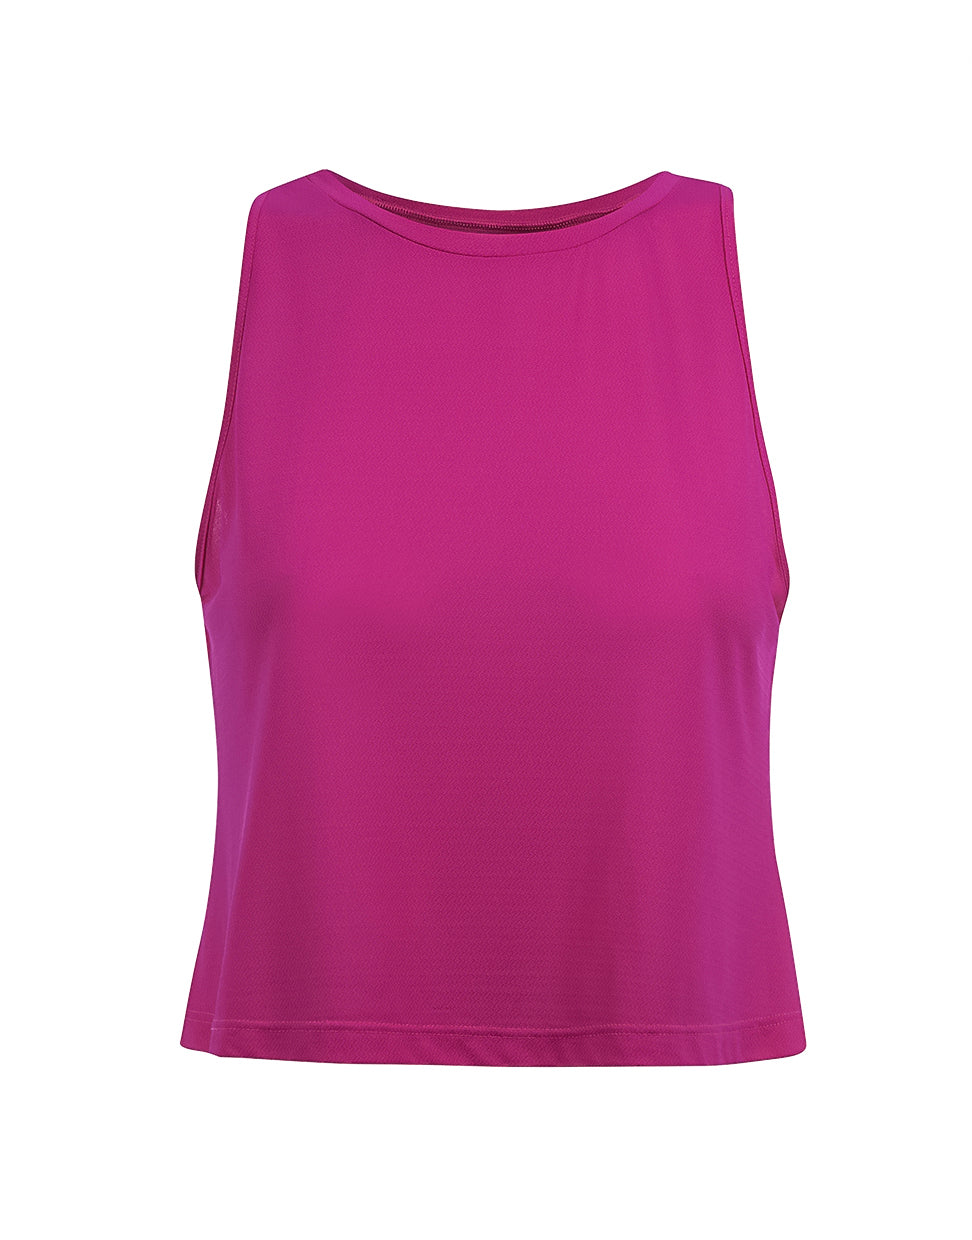 REGATA CROPPED BASIC COLOR ROSA